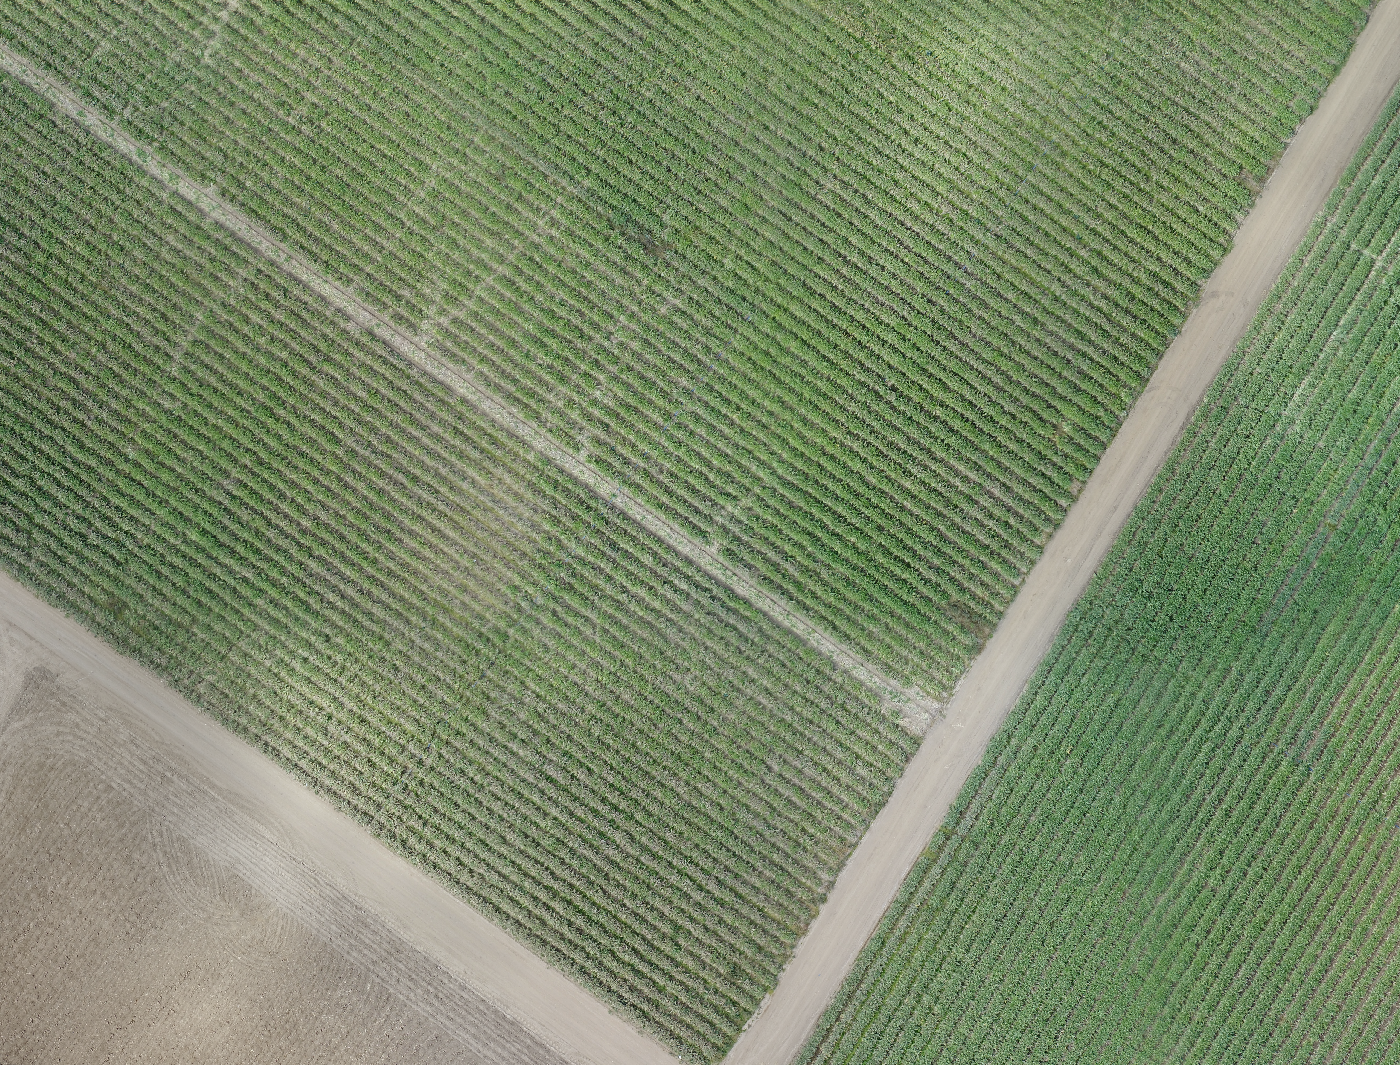 Pre-Harvest imagery.